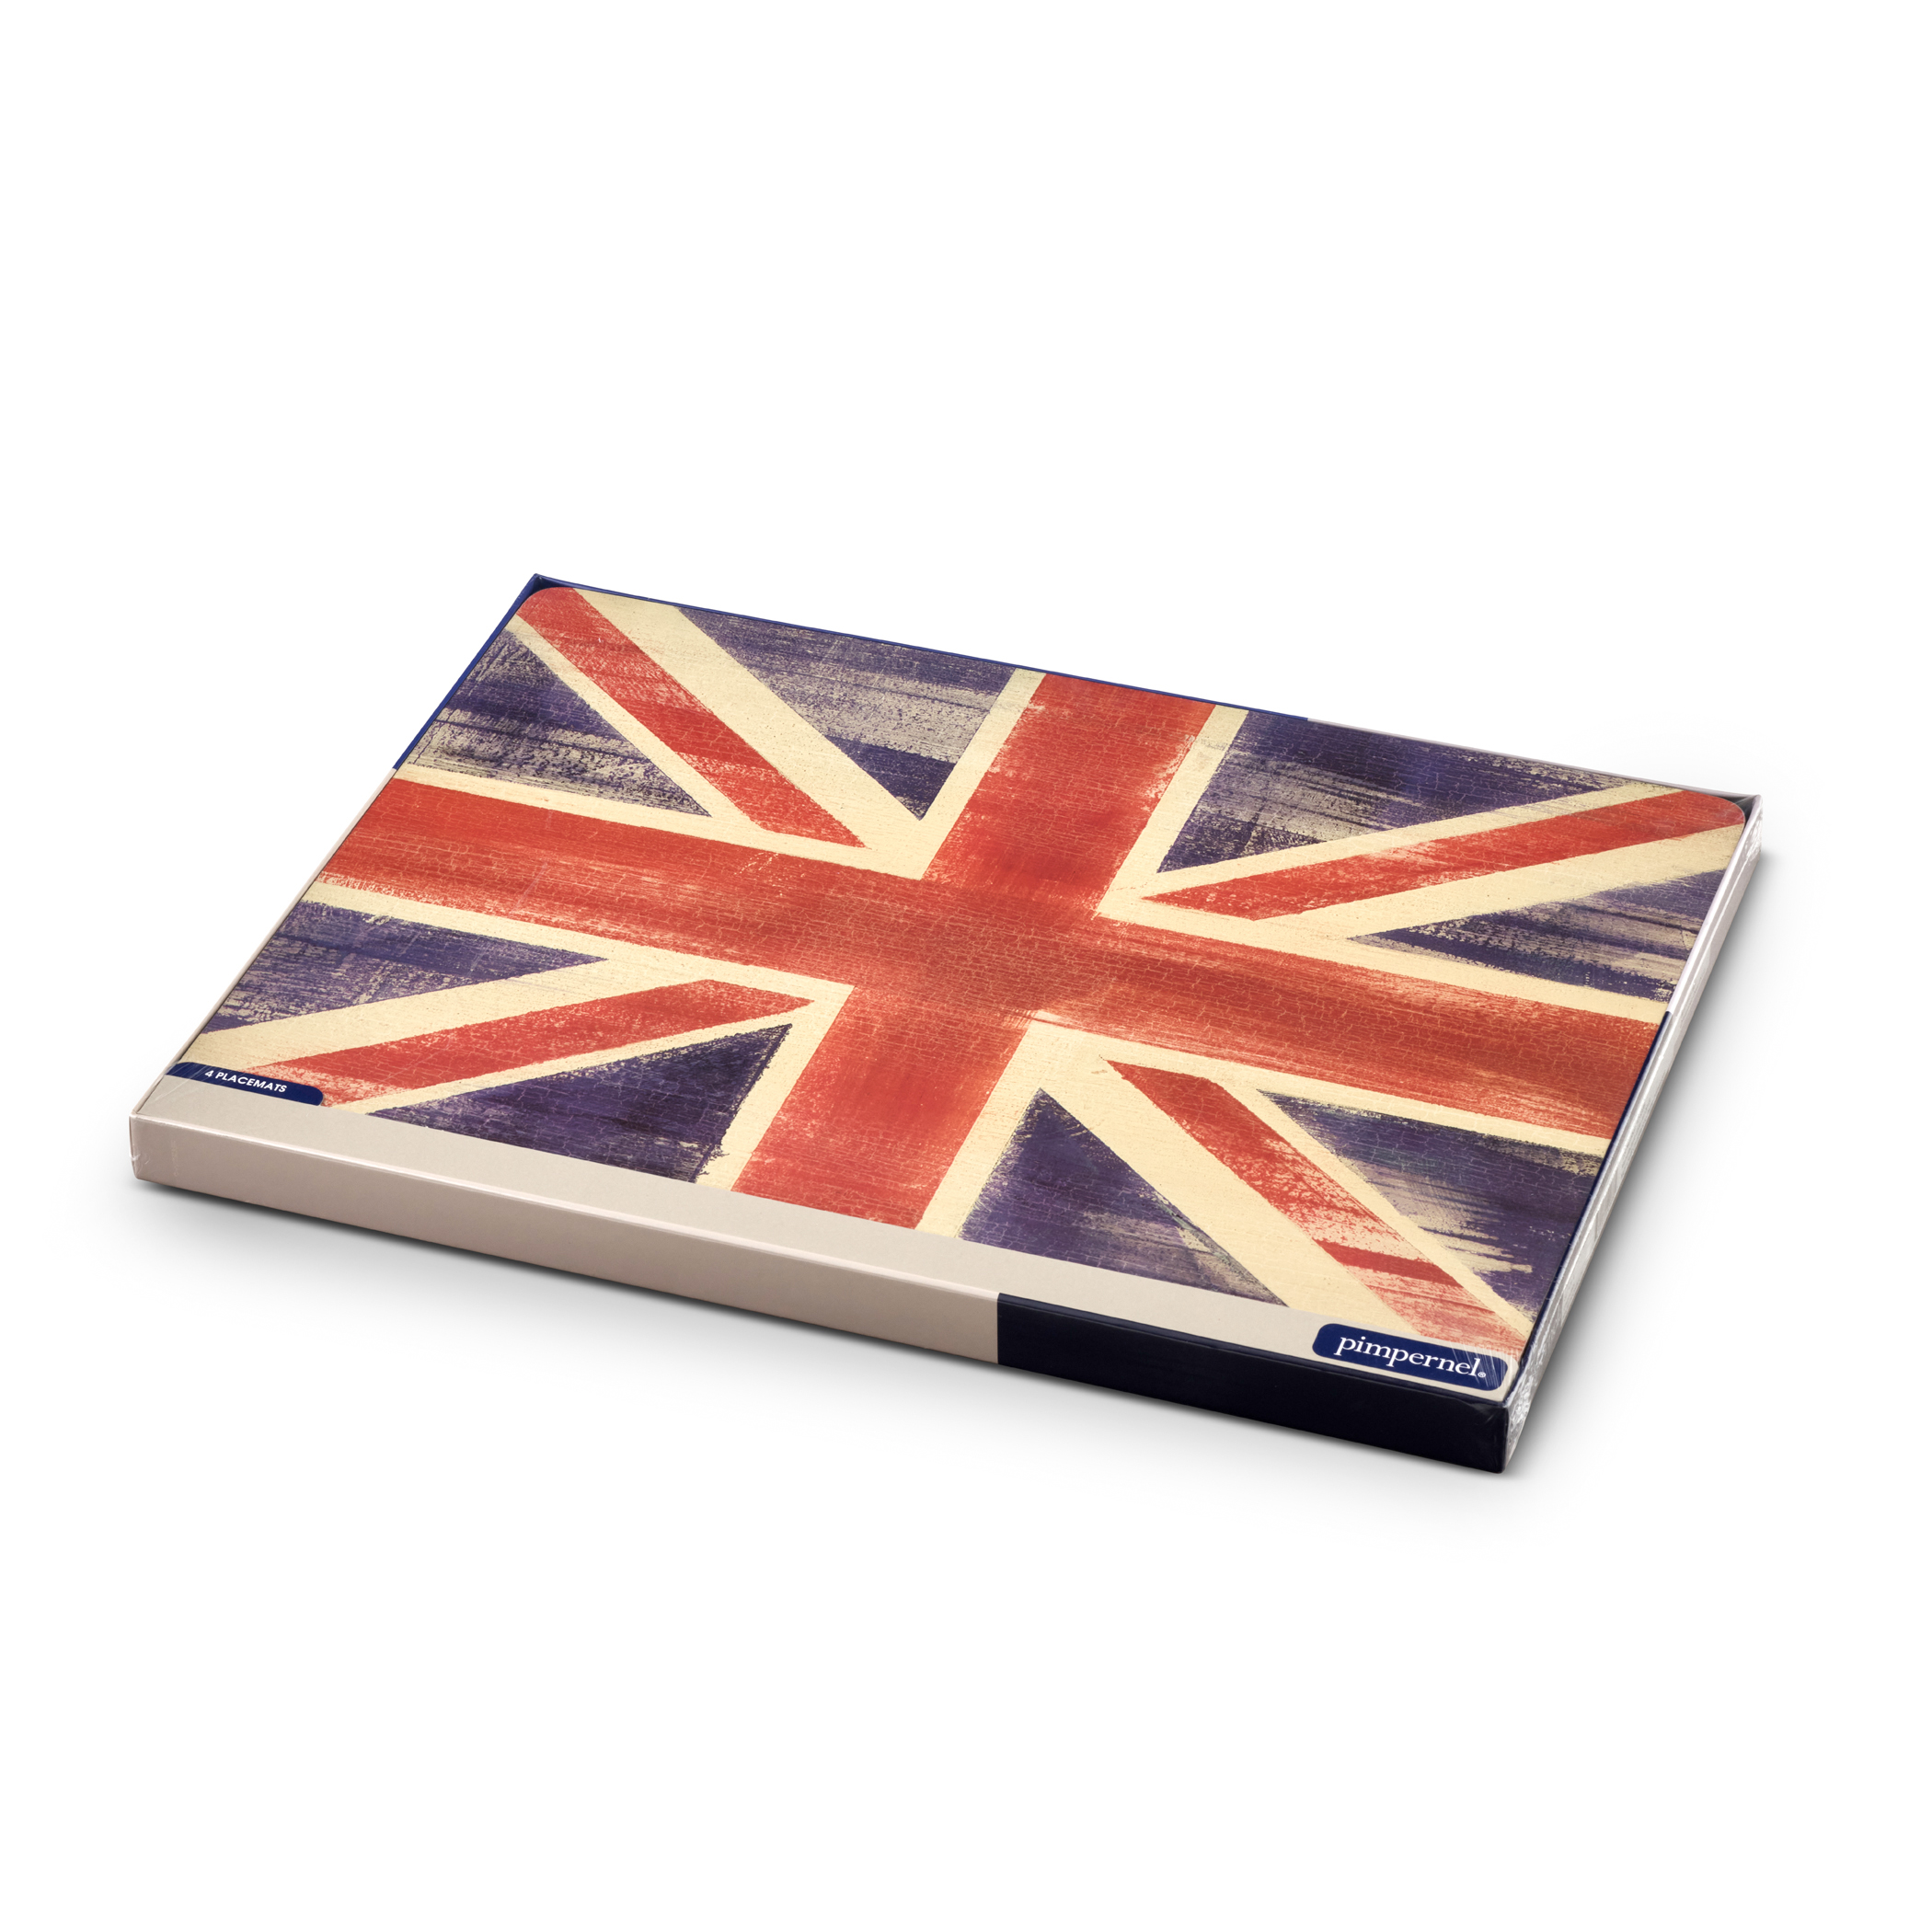 Pimpernel Union Jack Placemats Set of 4 image number 4